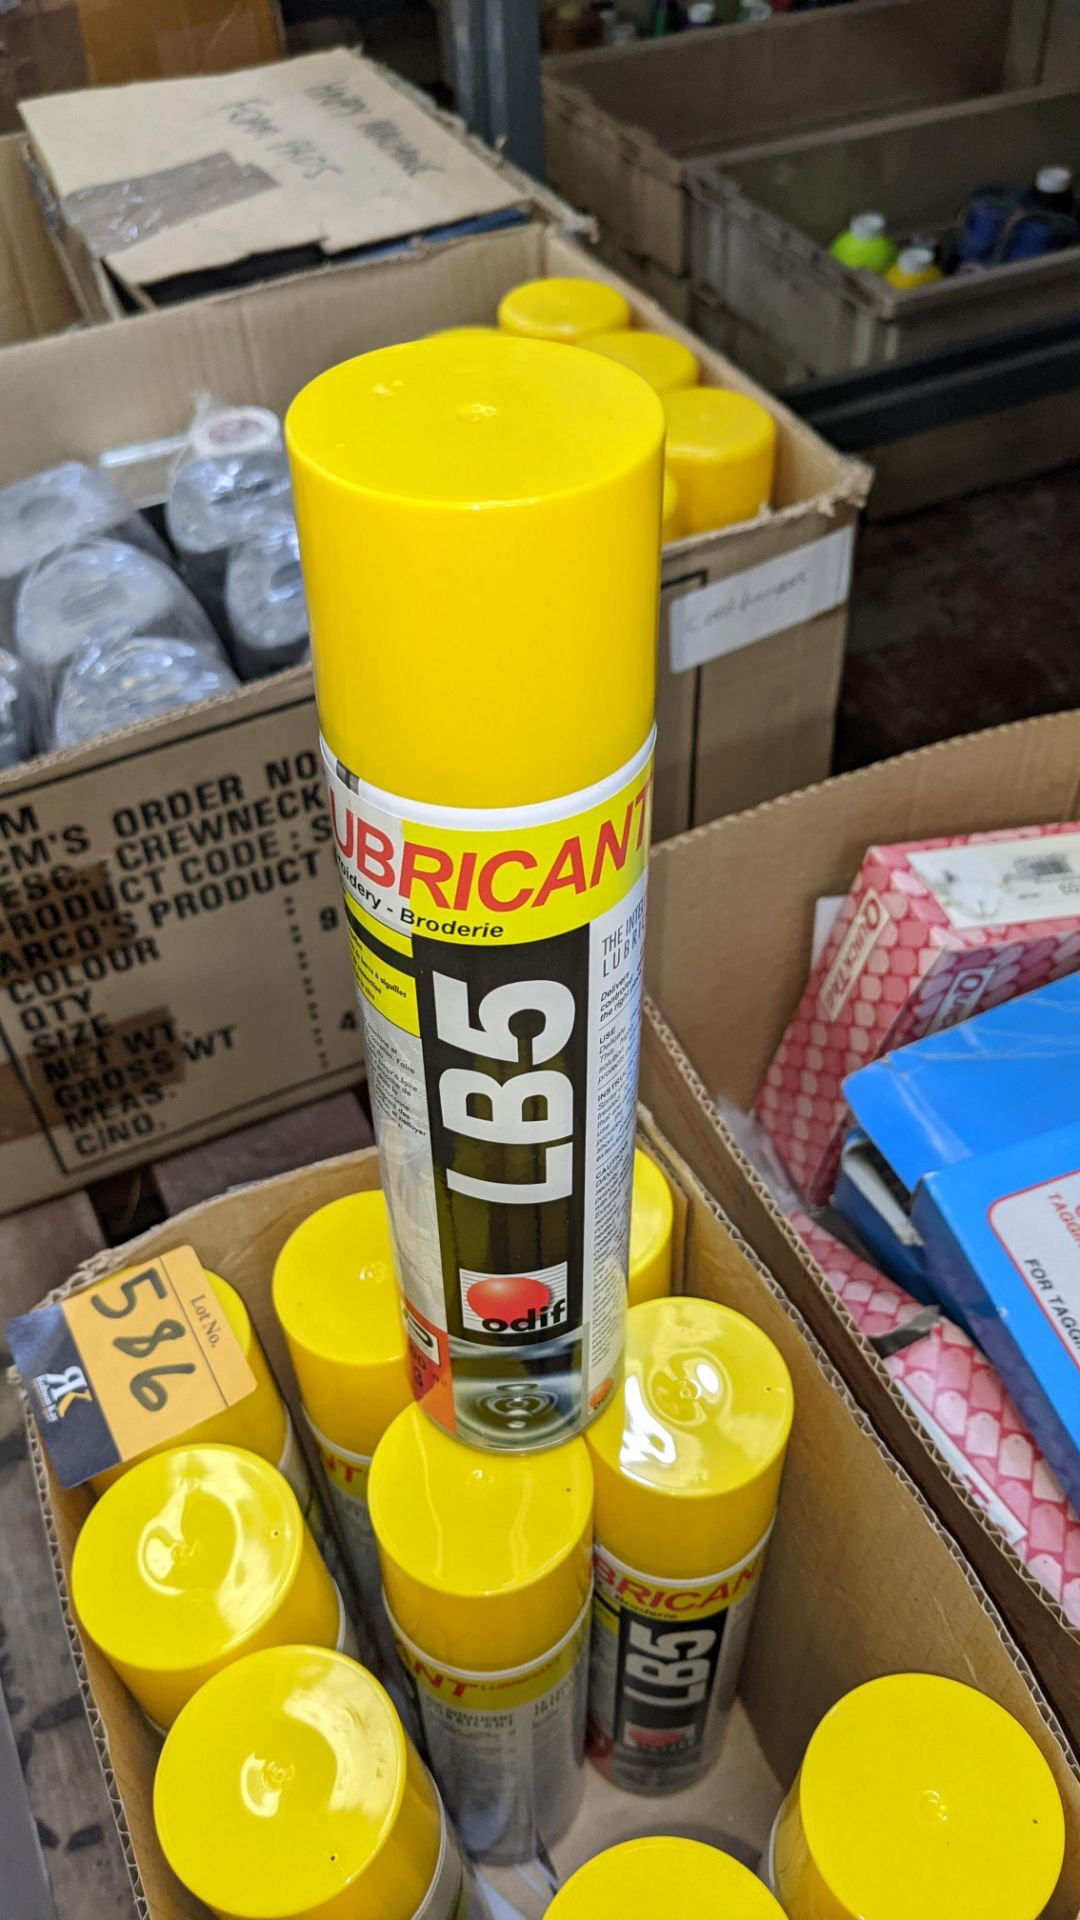 11 cans of LB5 embroidery lubricant - Image 4 of 4